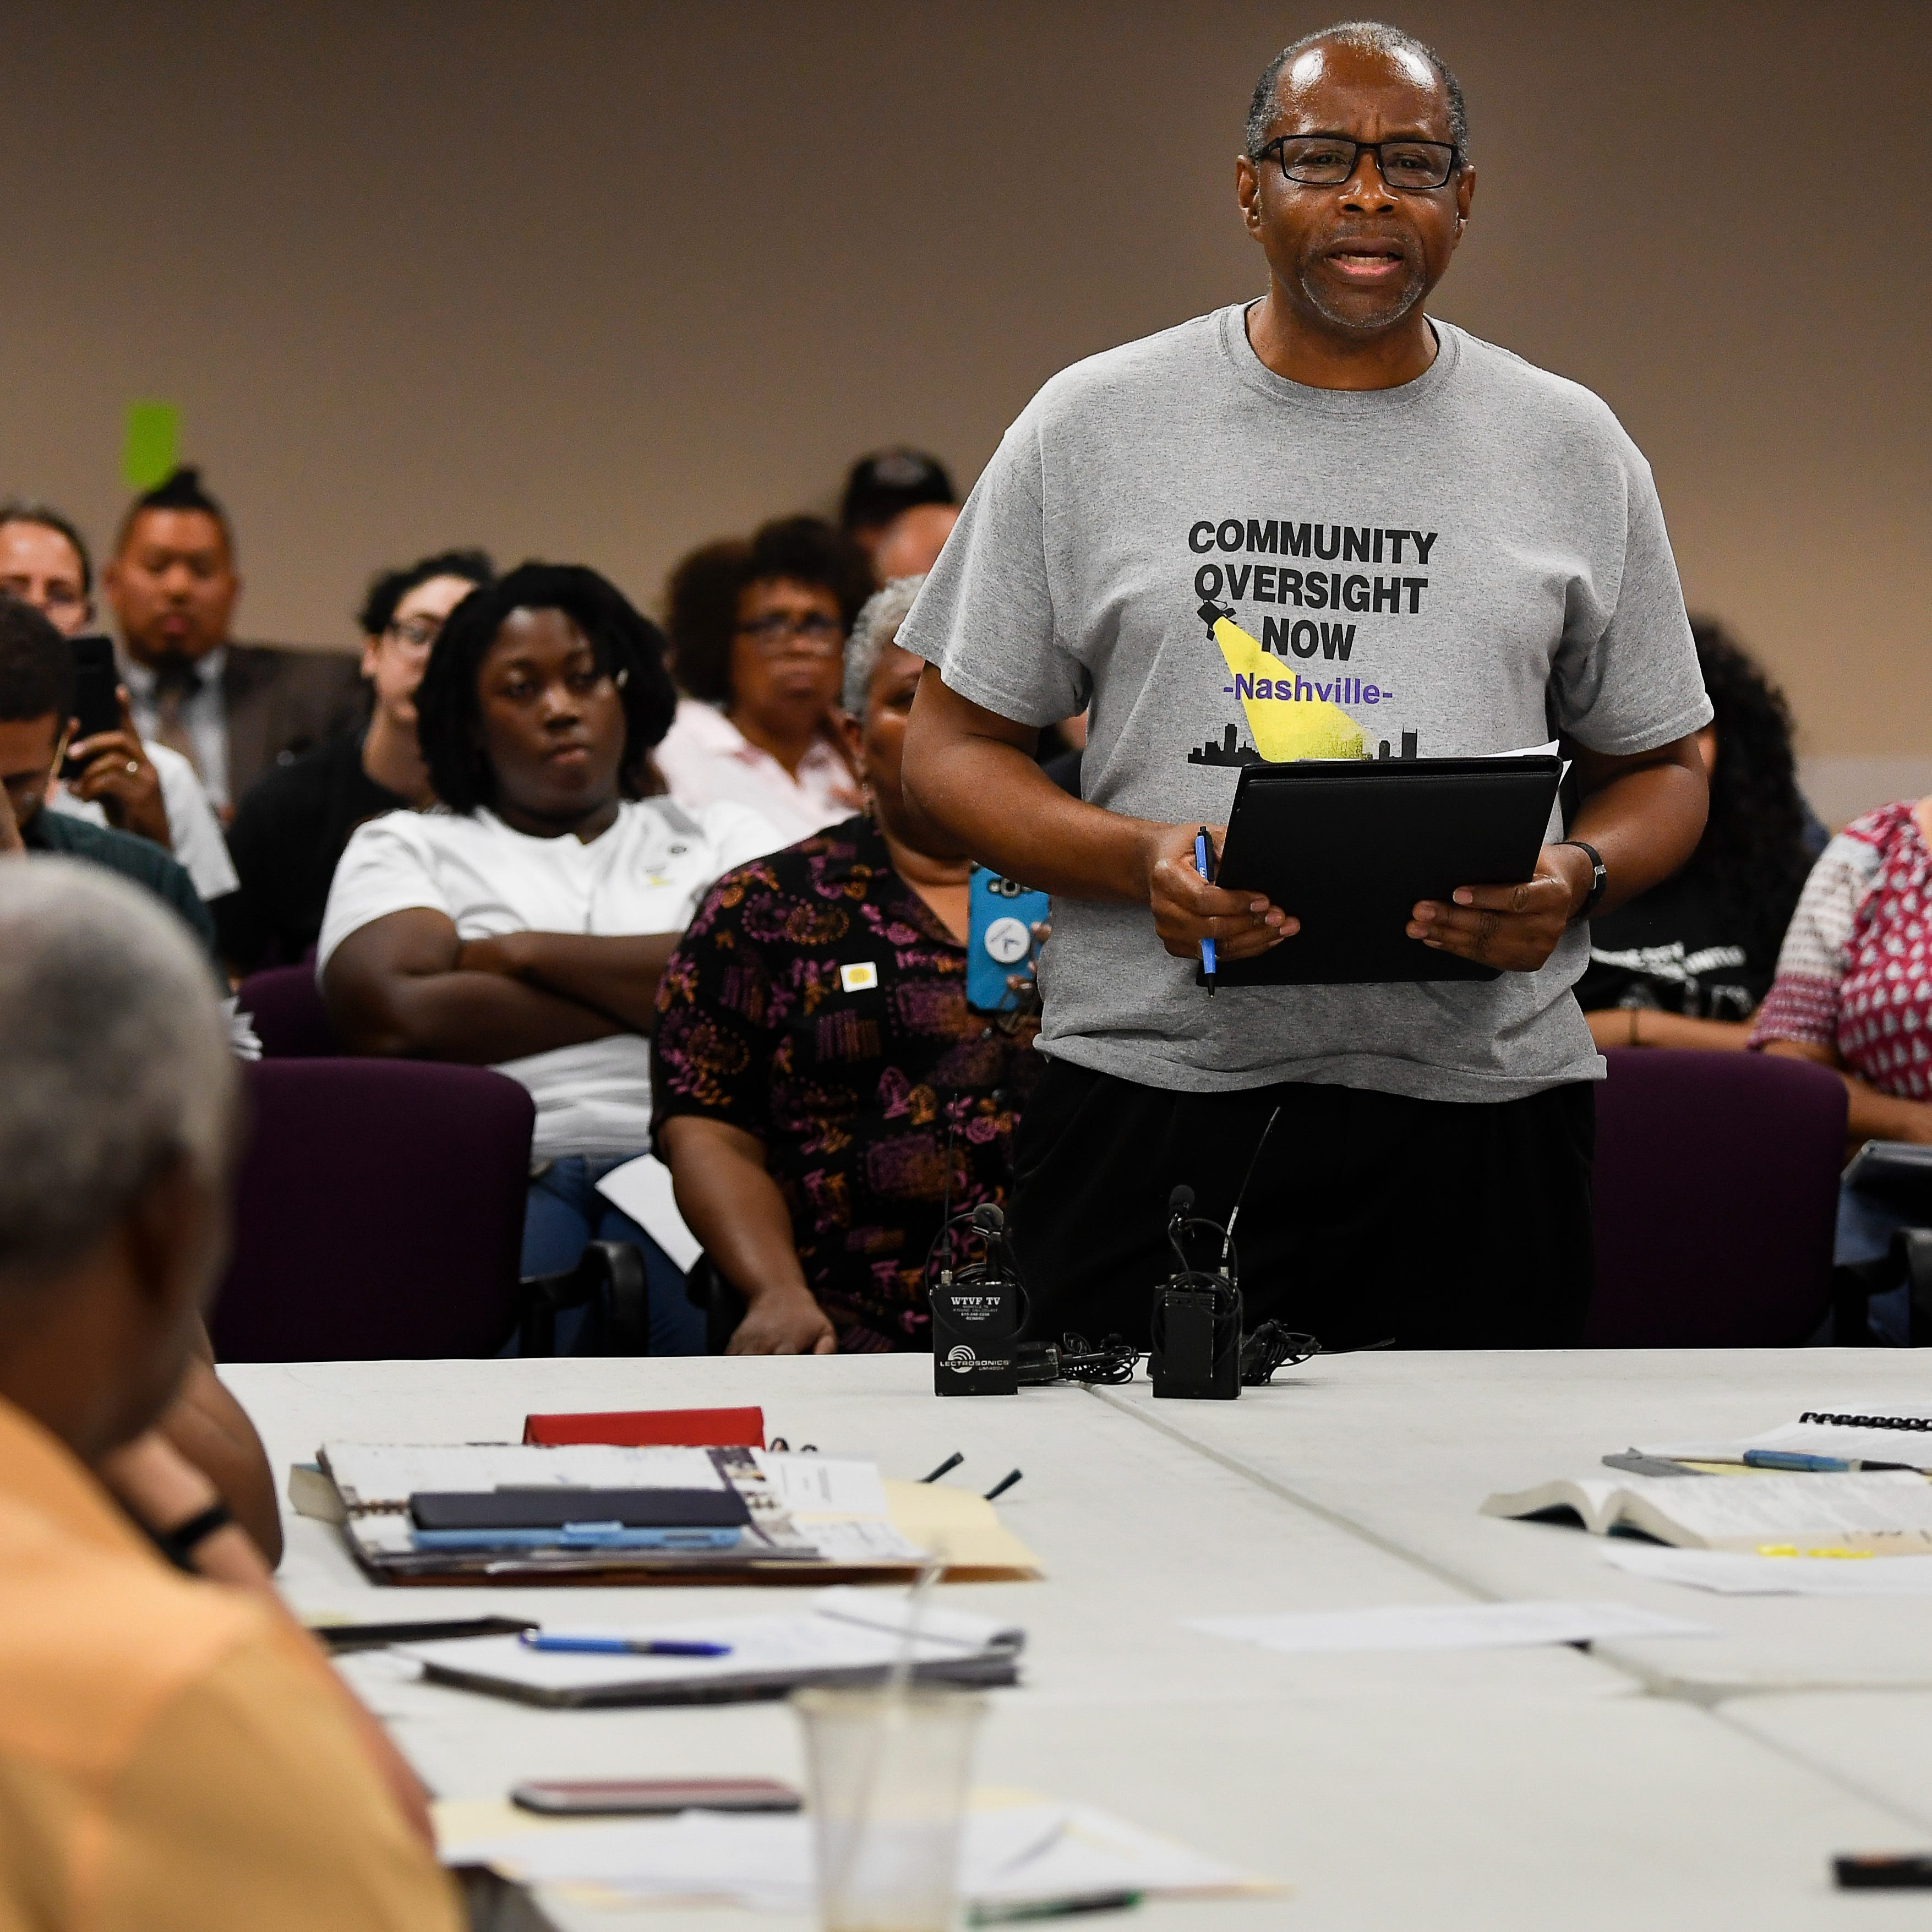 Civilian oversight of police hasn't worked in other cities; Nashville should take note | Opinion